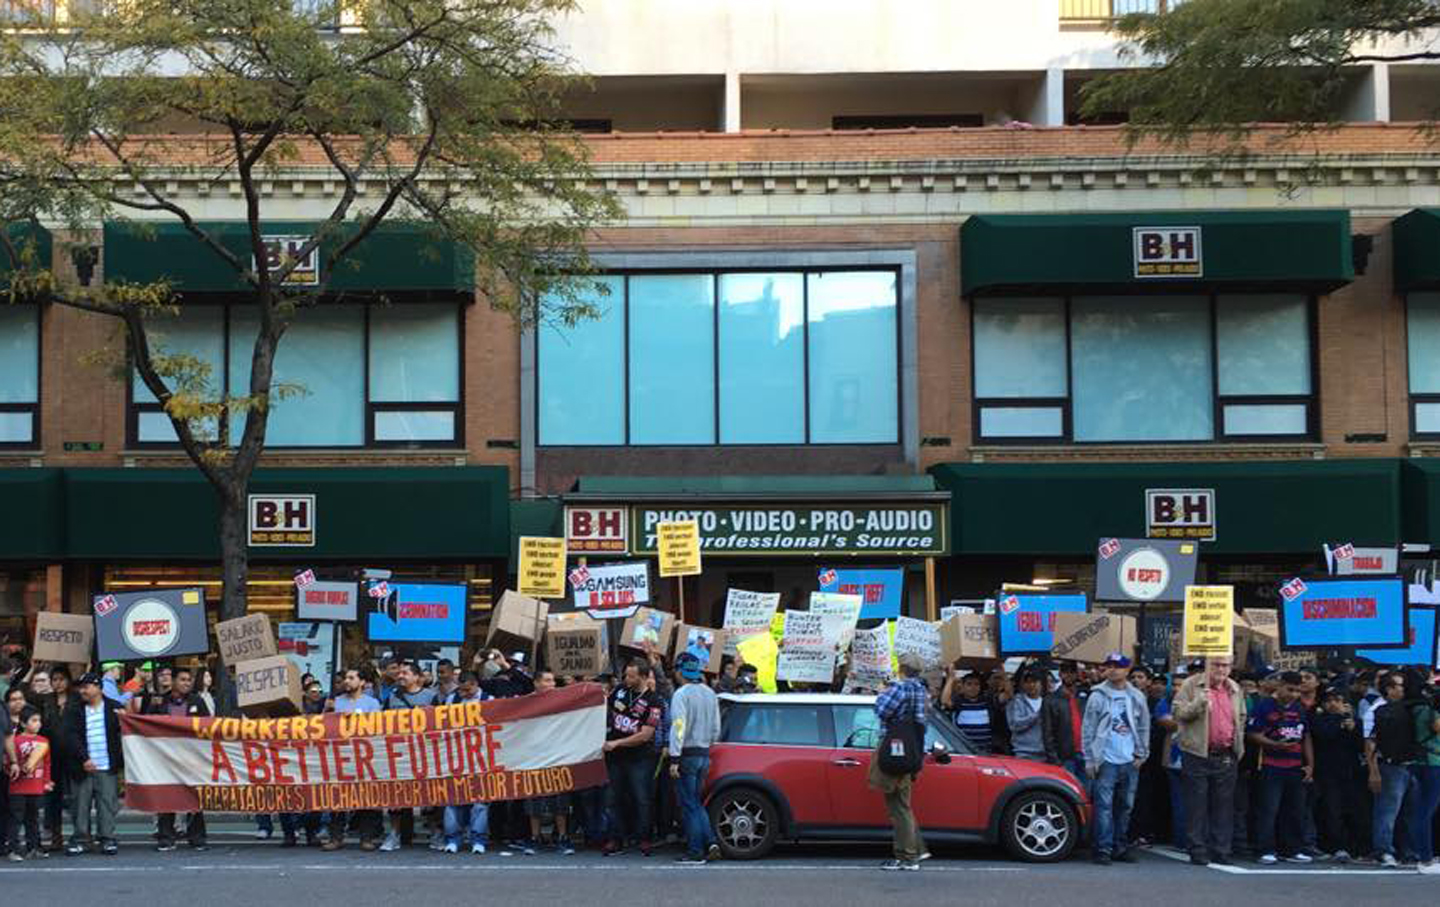 Workers protest outside a B&H store in New York.